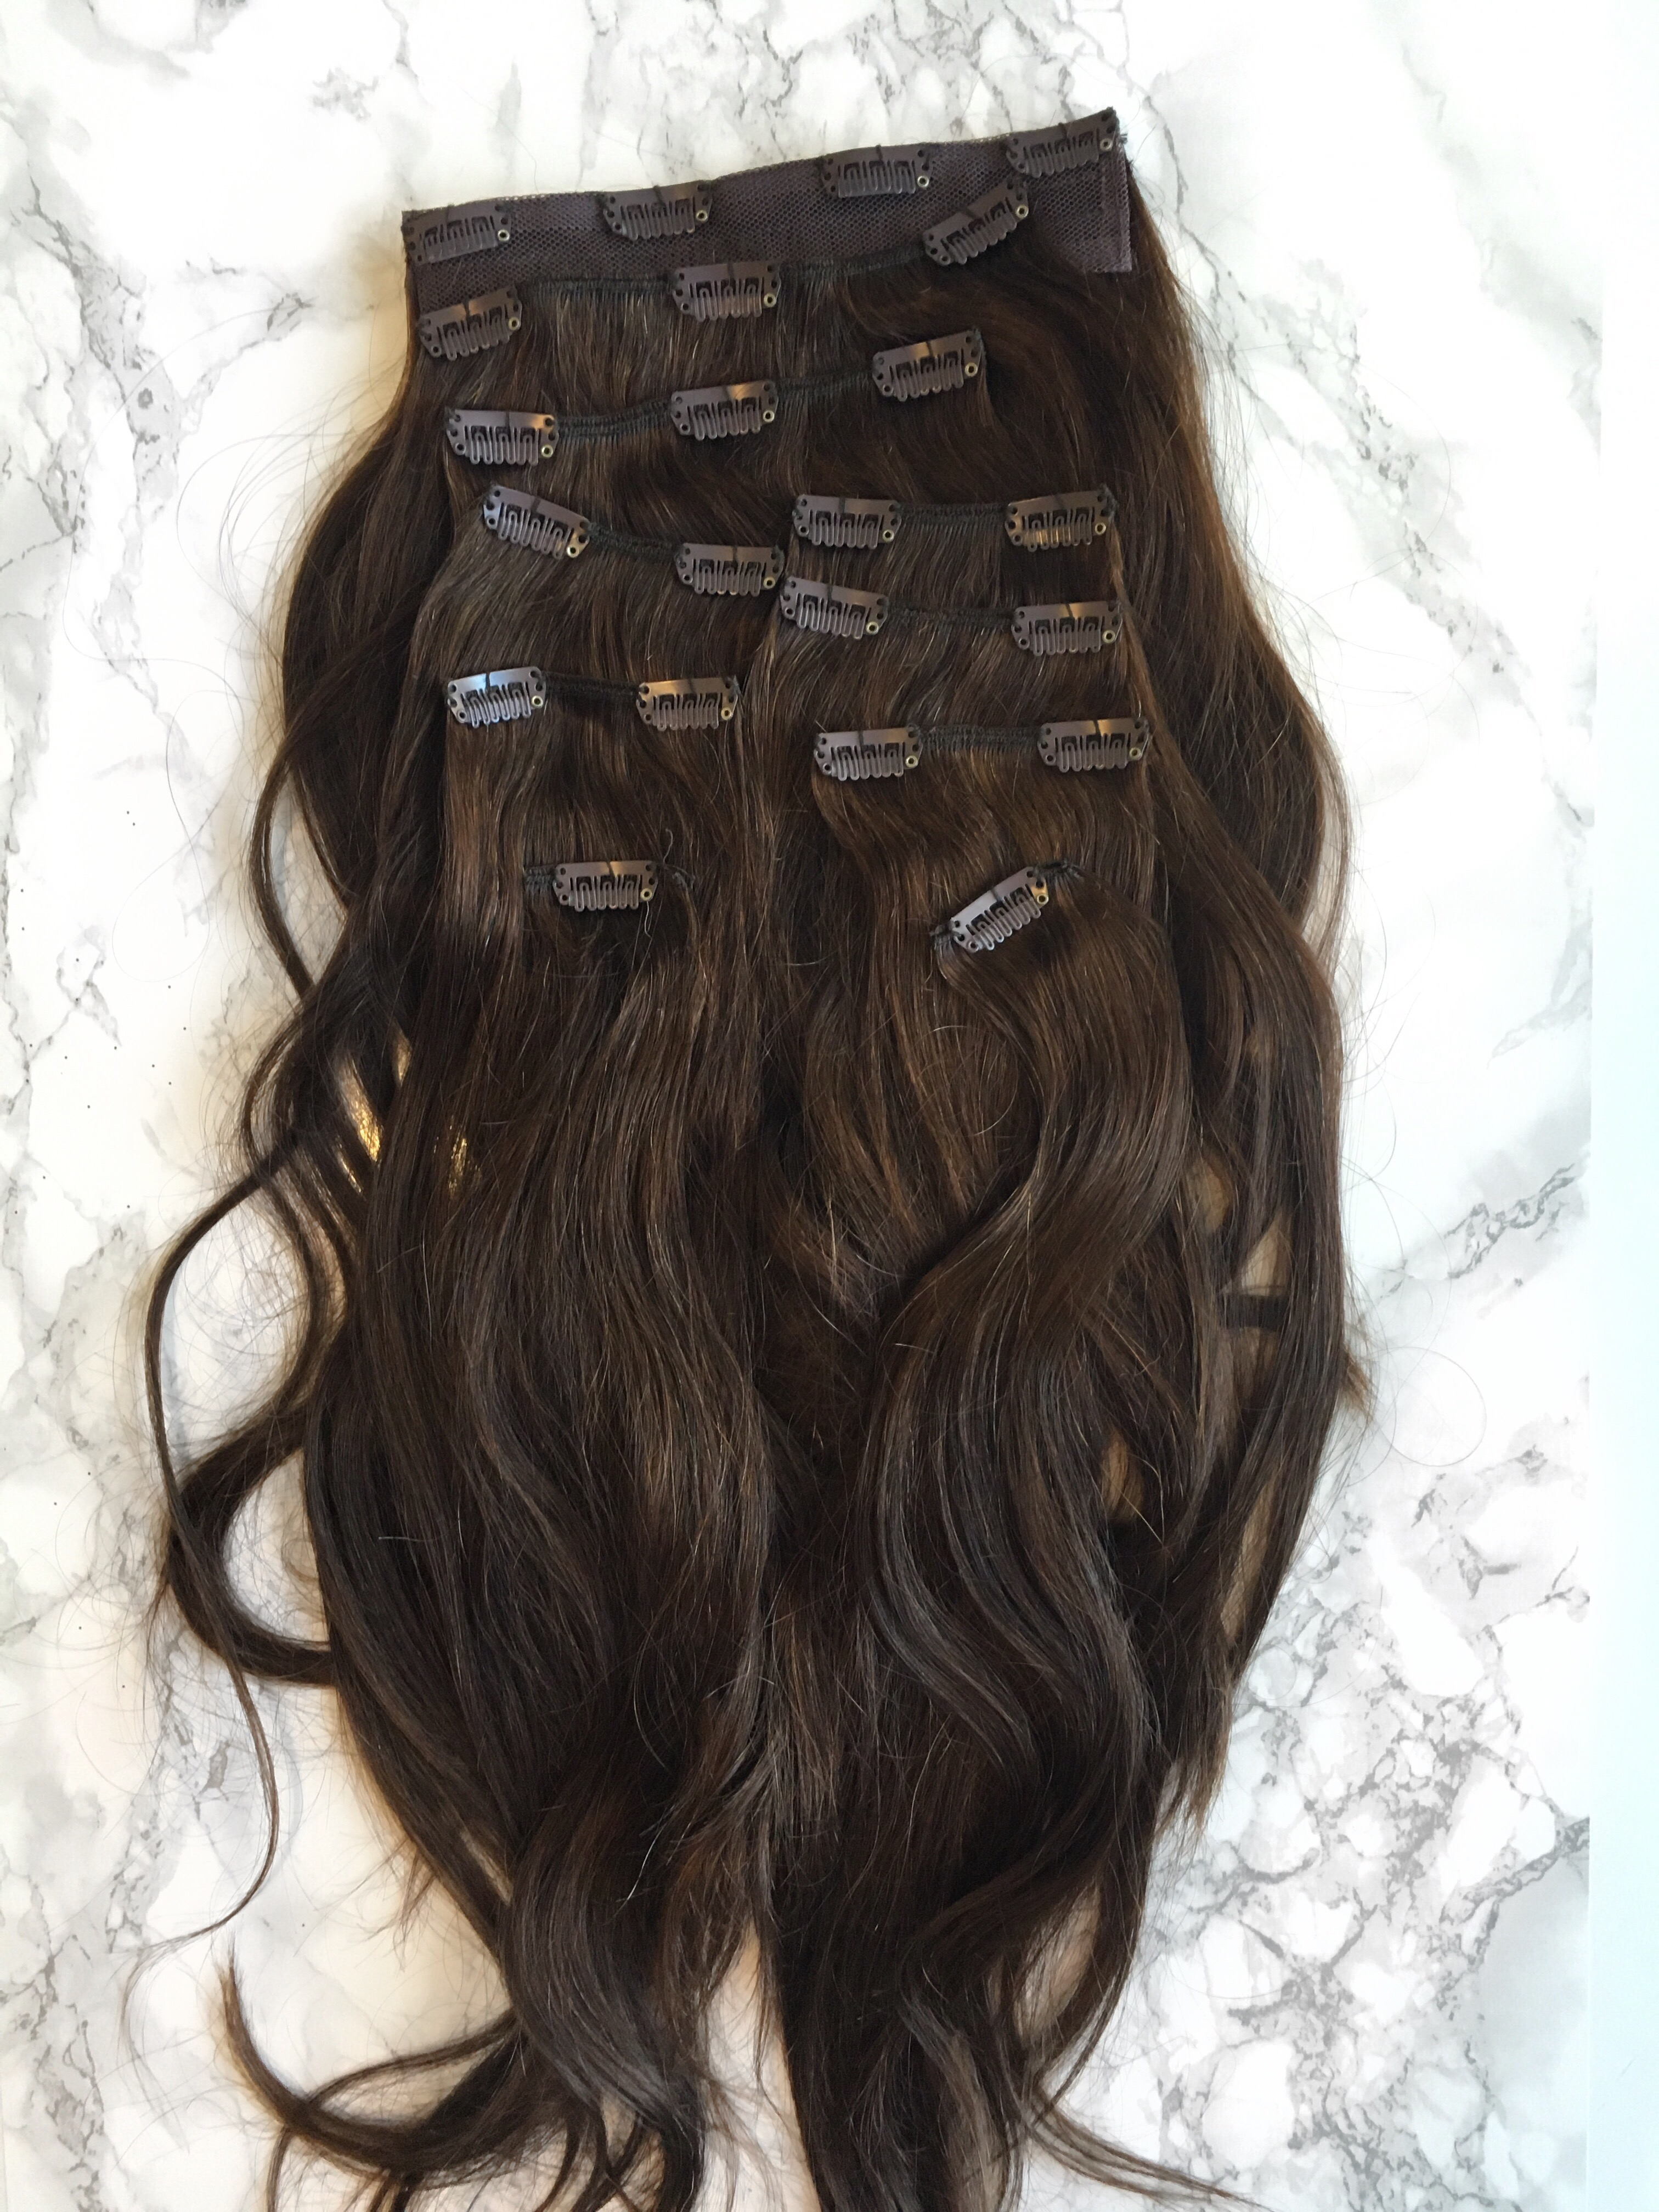 Clip-In Hair Extension Tips. These are the all the pieces I receives. 10 in total with my 200g Silky tough hair extensions